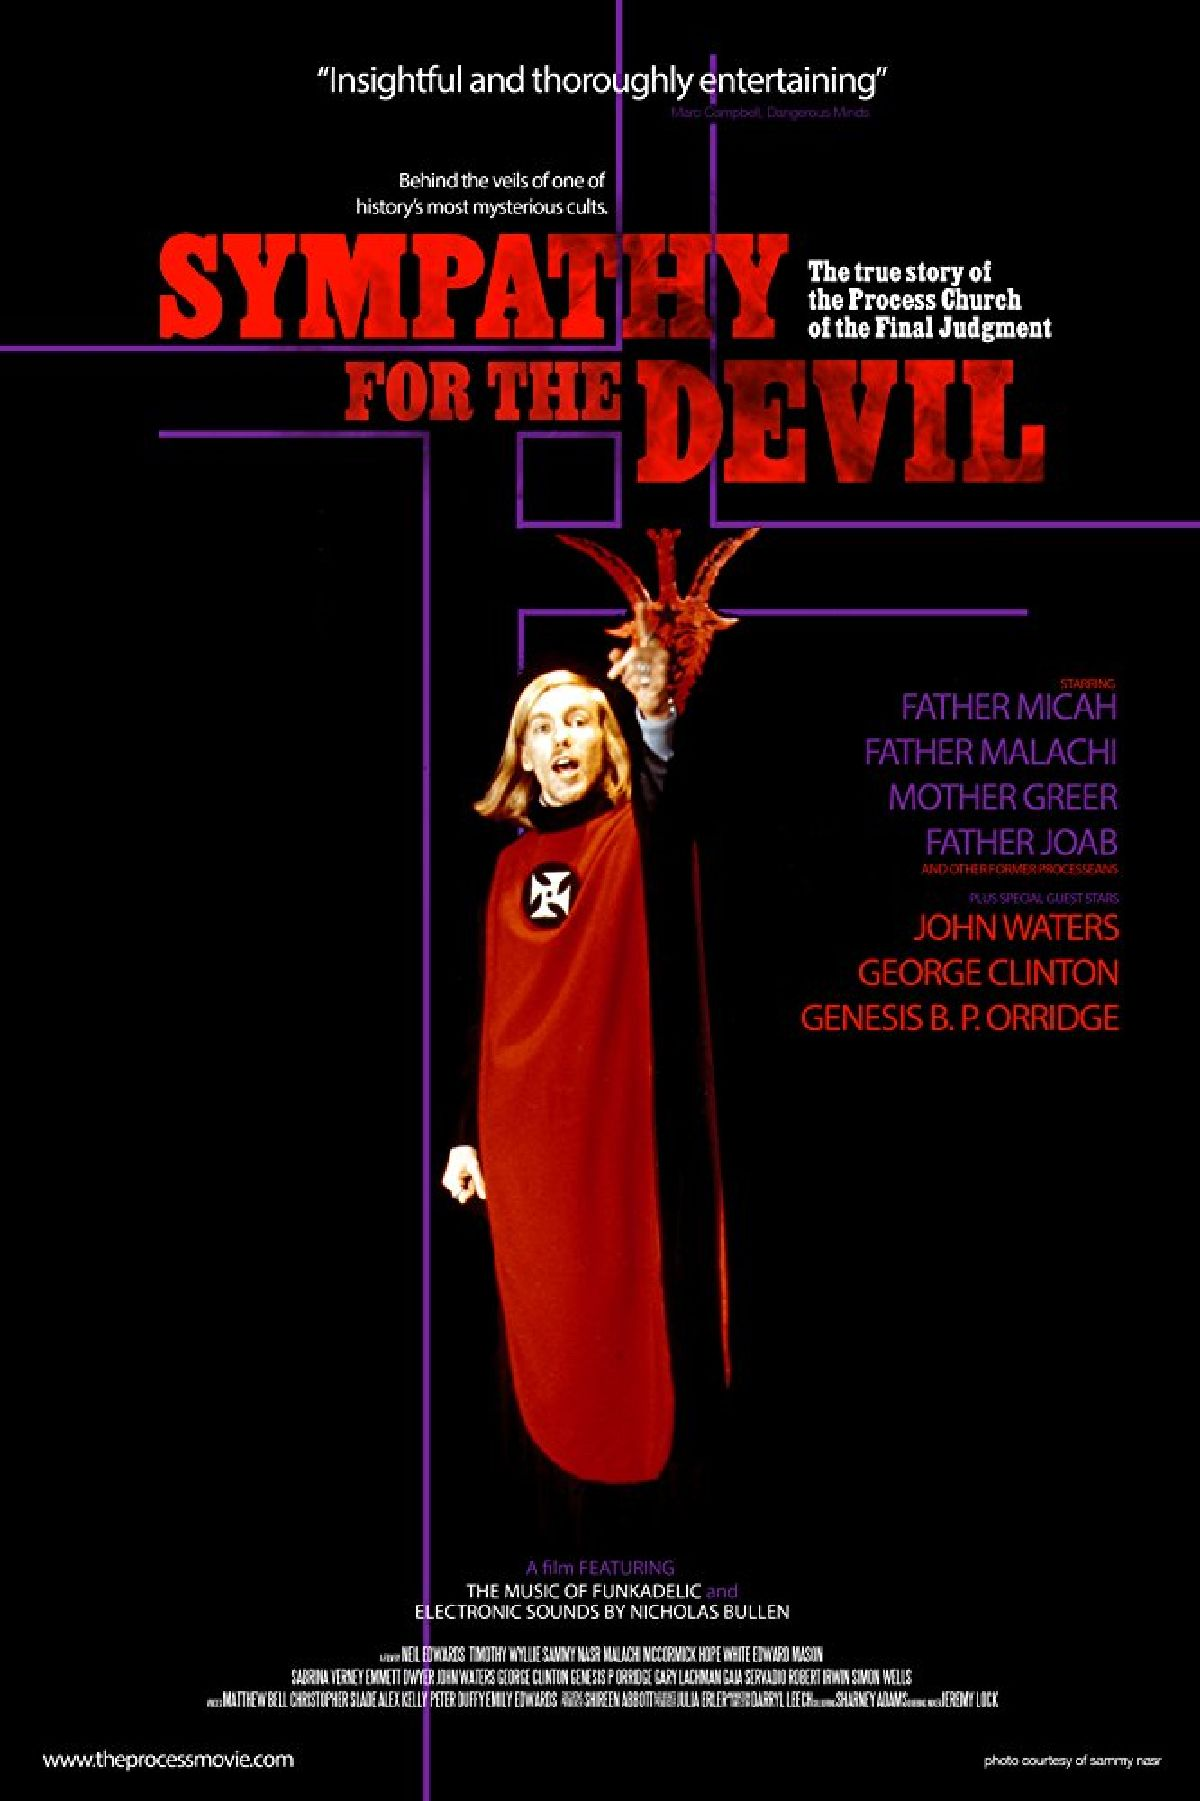 'Sympathy For The Devil' movie poster